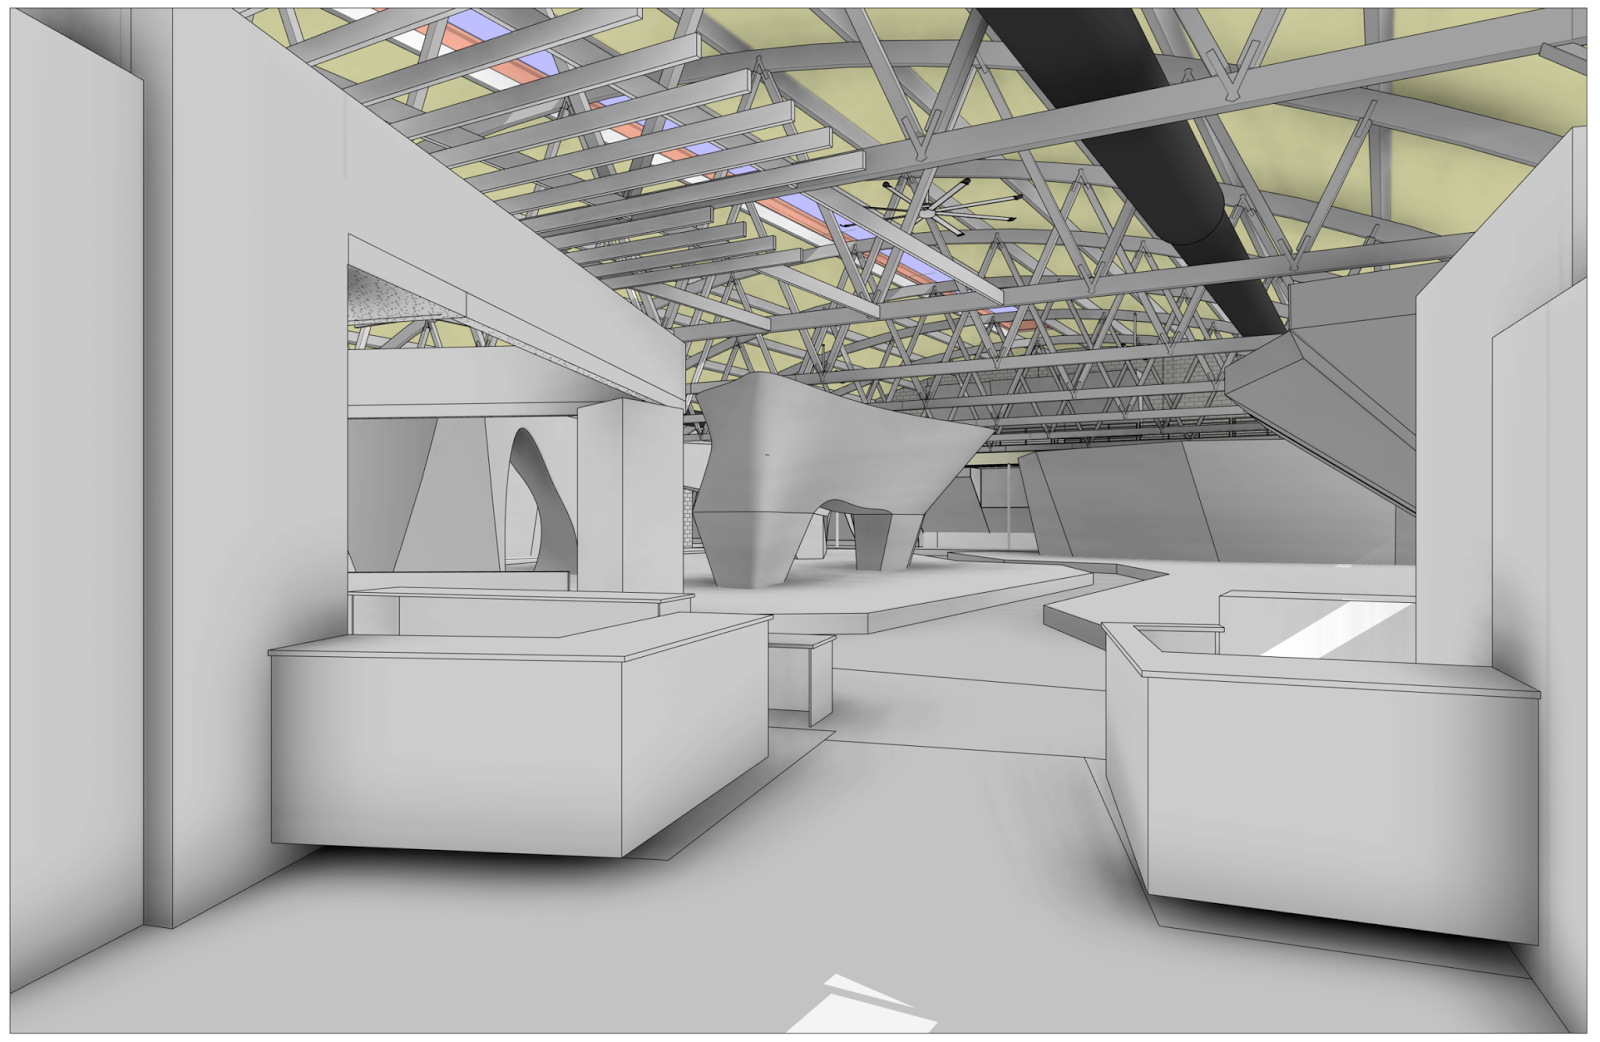 Revit Model View From Main Entry